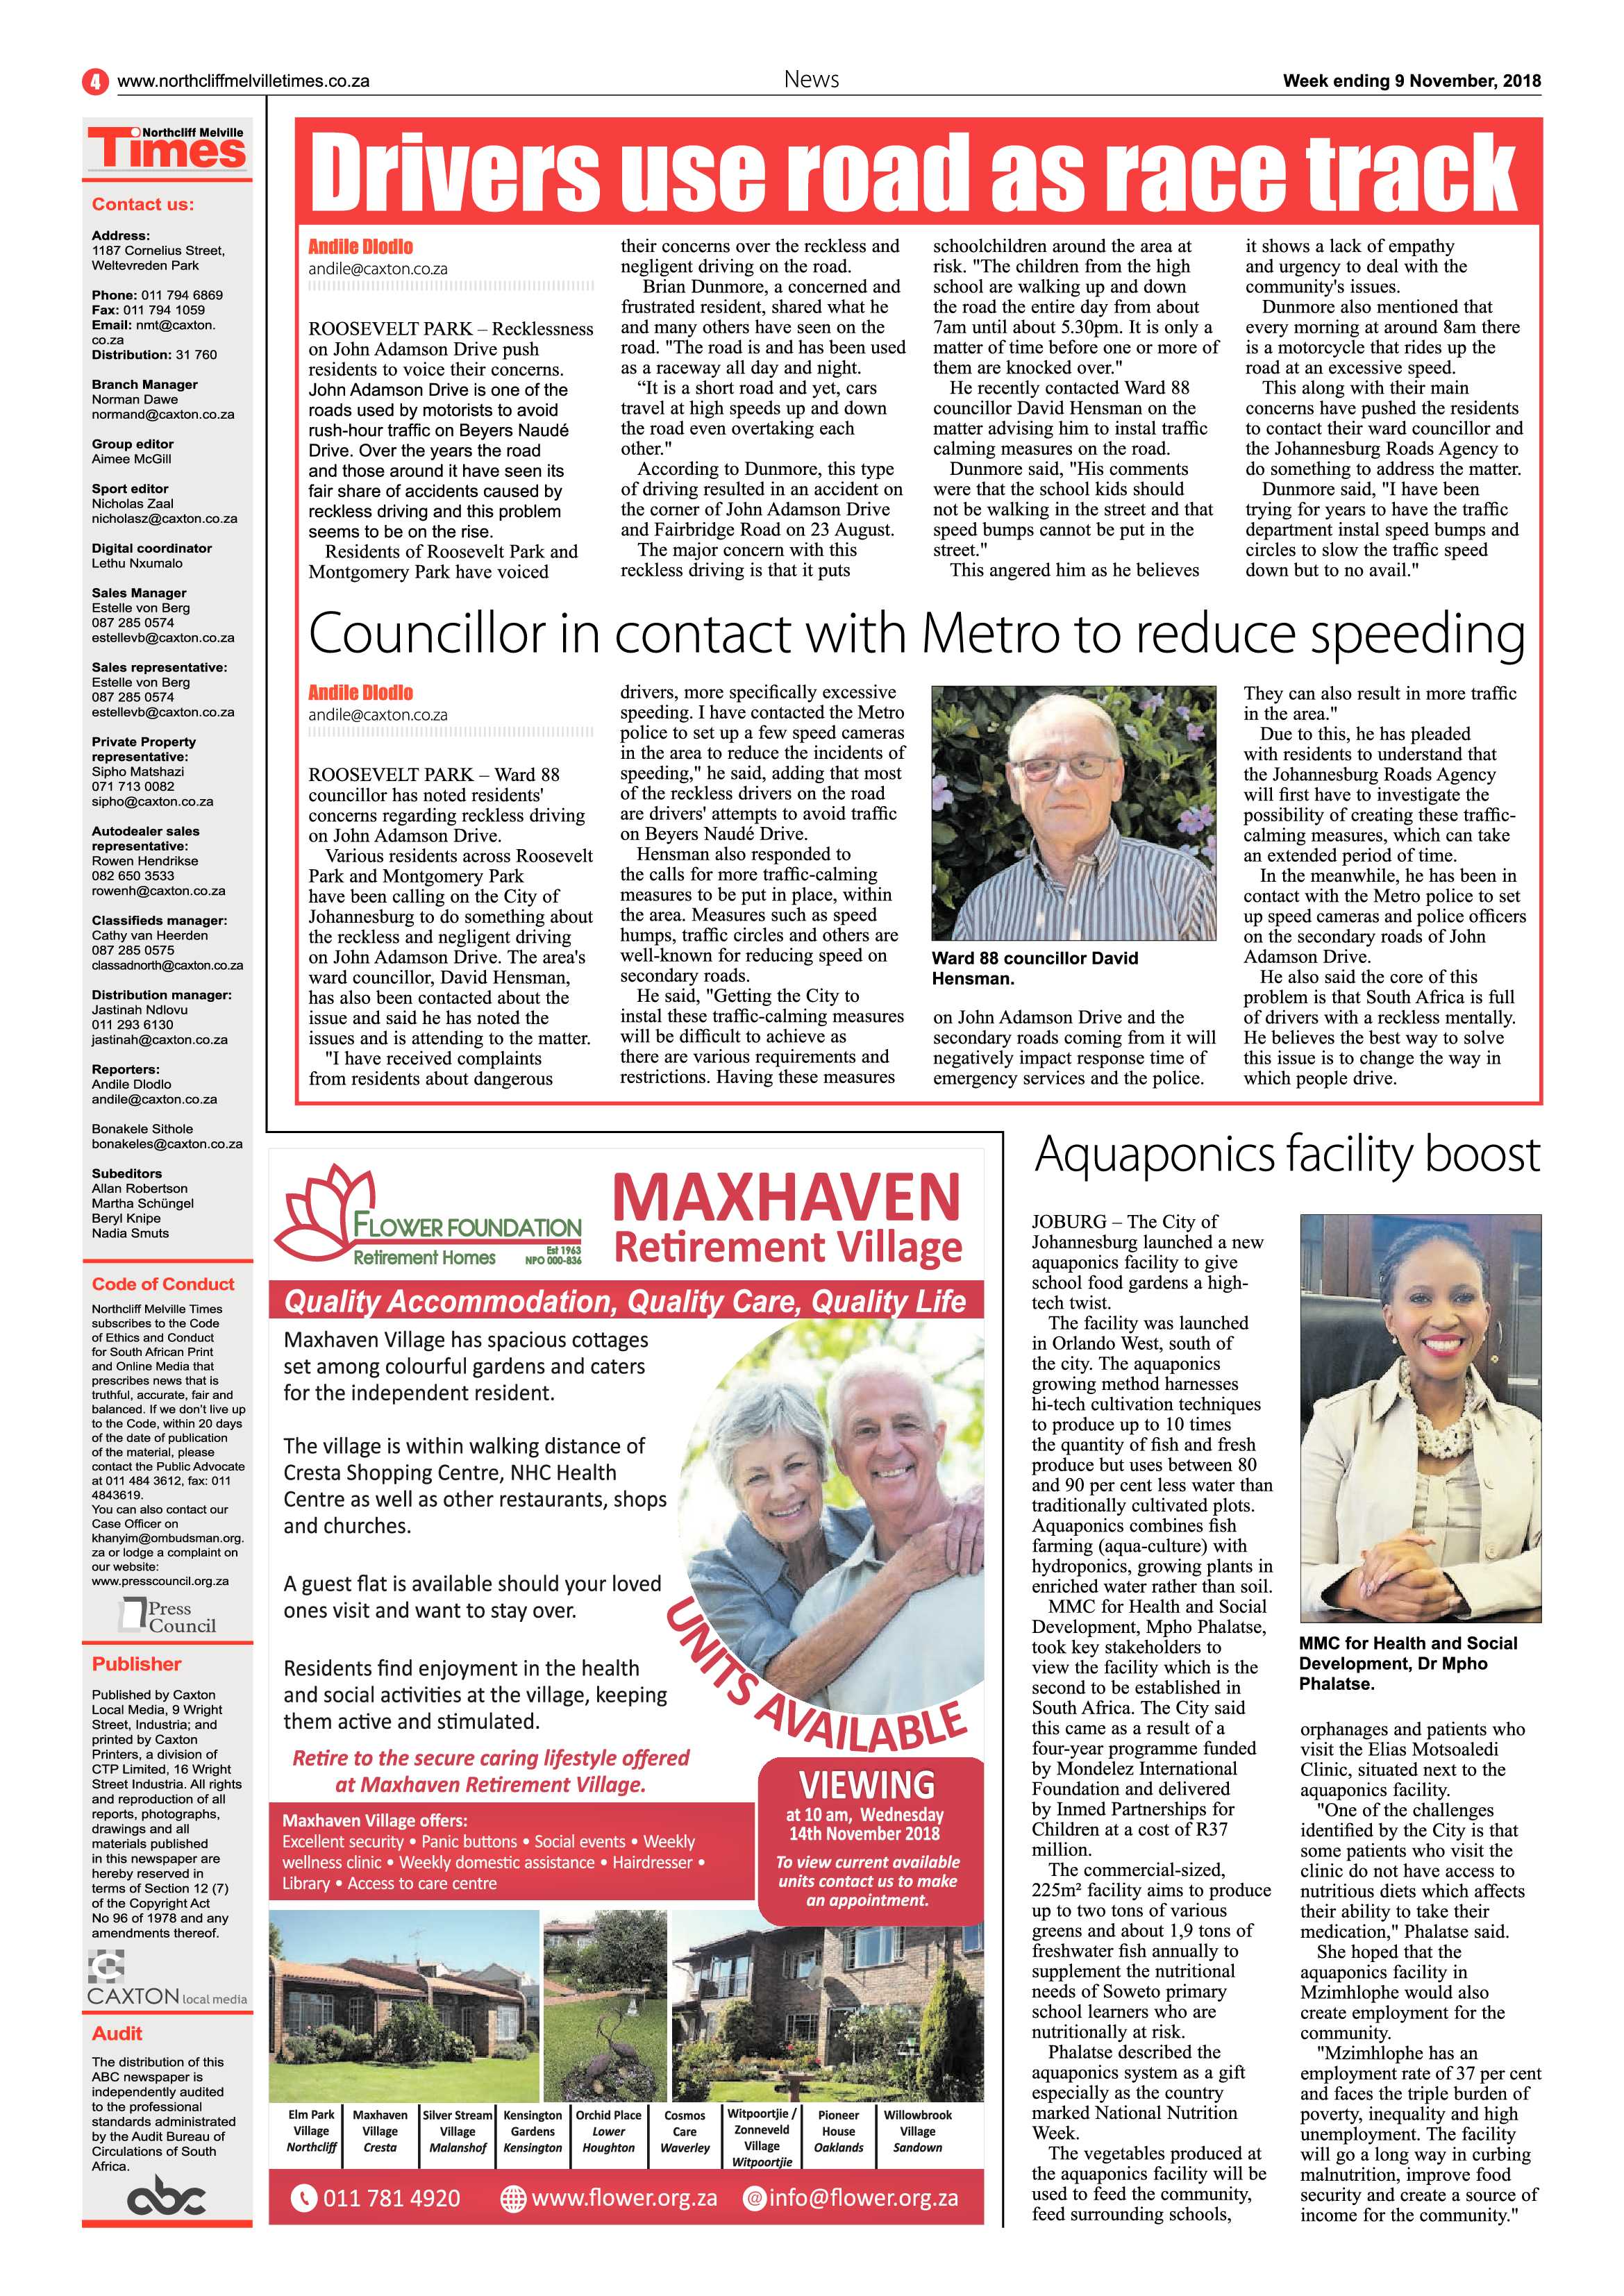 northcliff-melville-times-9-november-2018-epapers-page-4